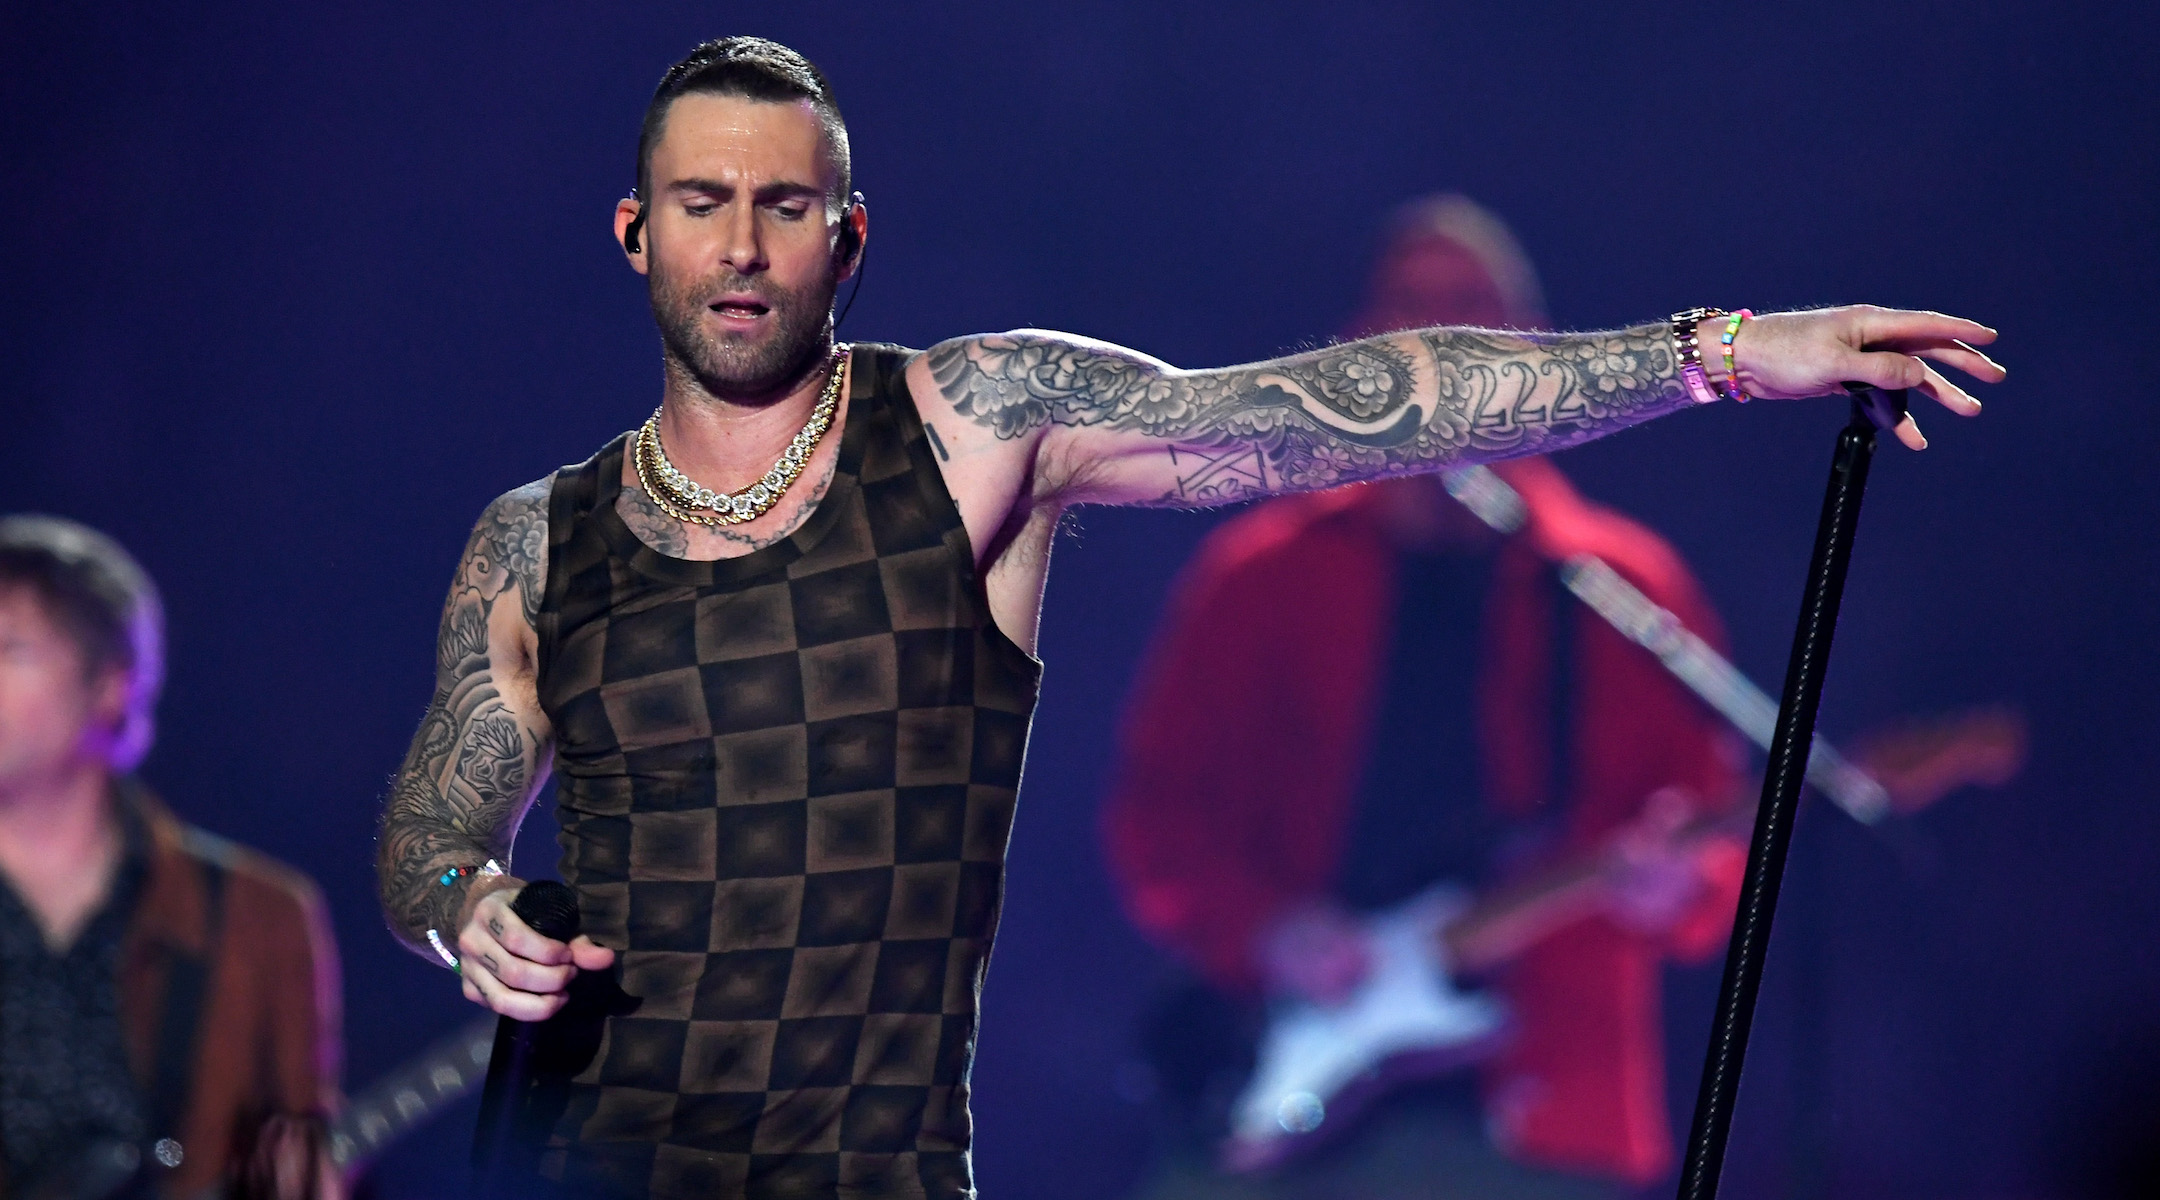 2deb6f768 Adam Levine of Maroon 5 performs during the Super Bowl LIII halftime show  at Mercedes-Benz Stadium in Atlanta, Feb. 3, 2019. (Kevin Winter/Getty  Images)